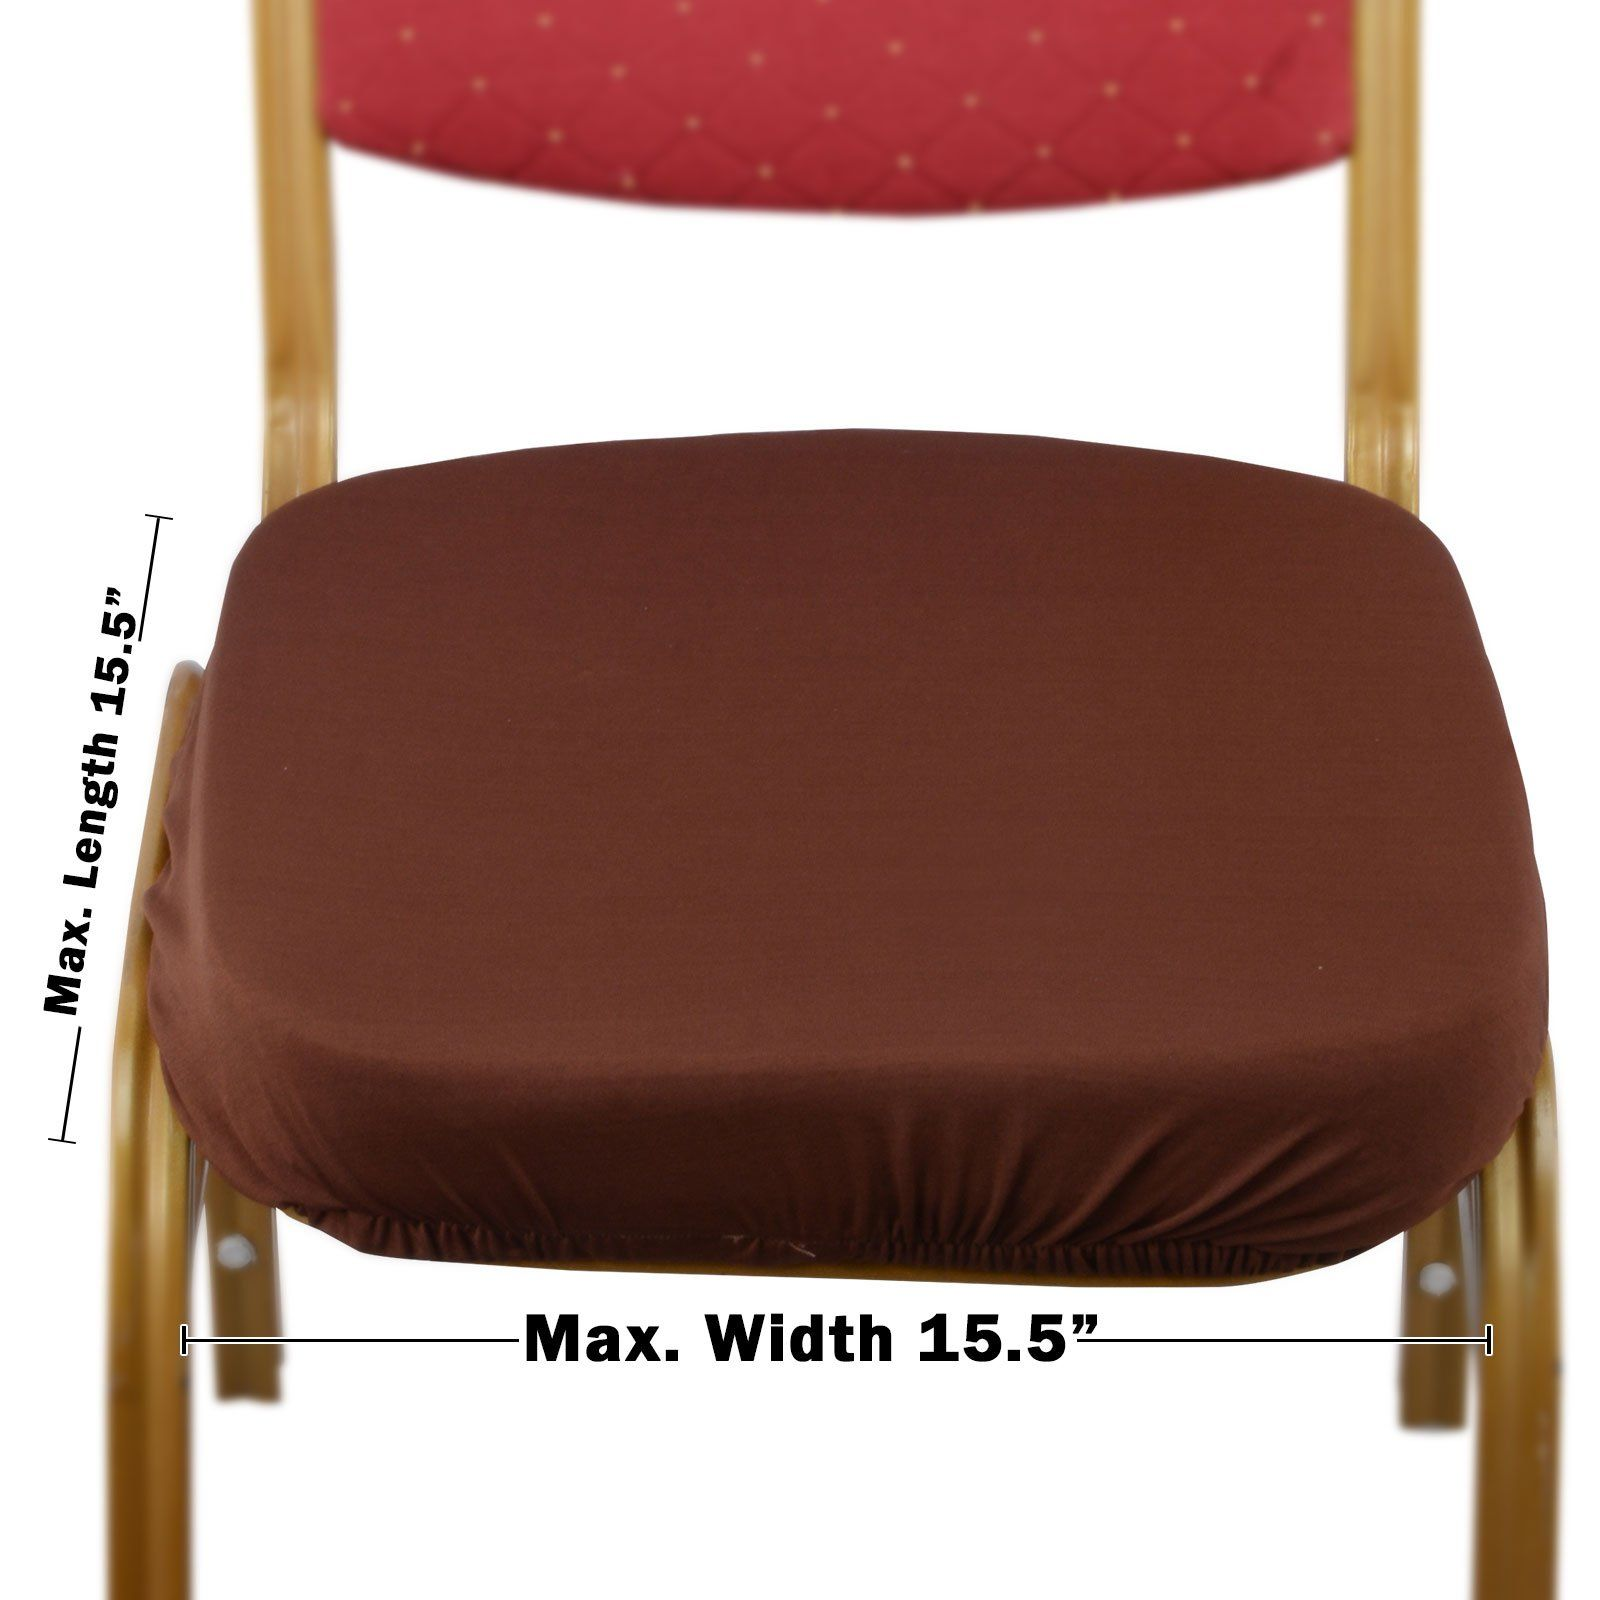 Voilamart Dinning Room Chair Slipcovers Seat Covers Office Chair Protectors Soft Stretchable Fabr Dining Chair Covers Dinning Room Decor Seat Covers For Chairs